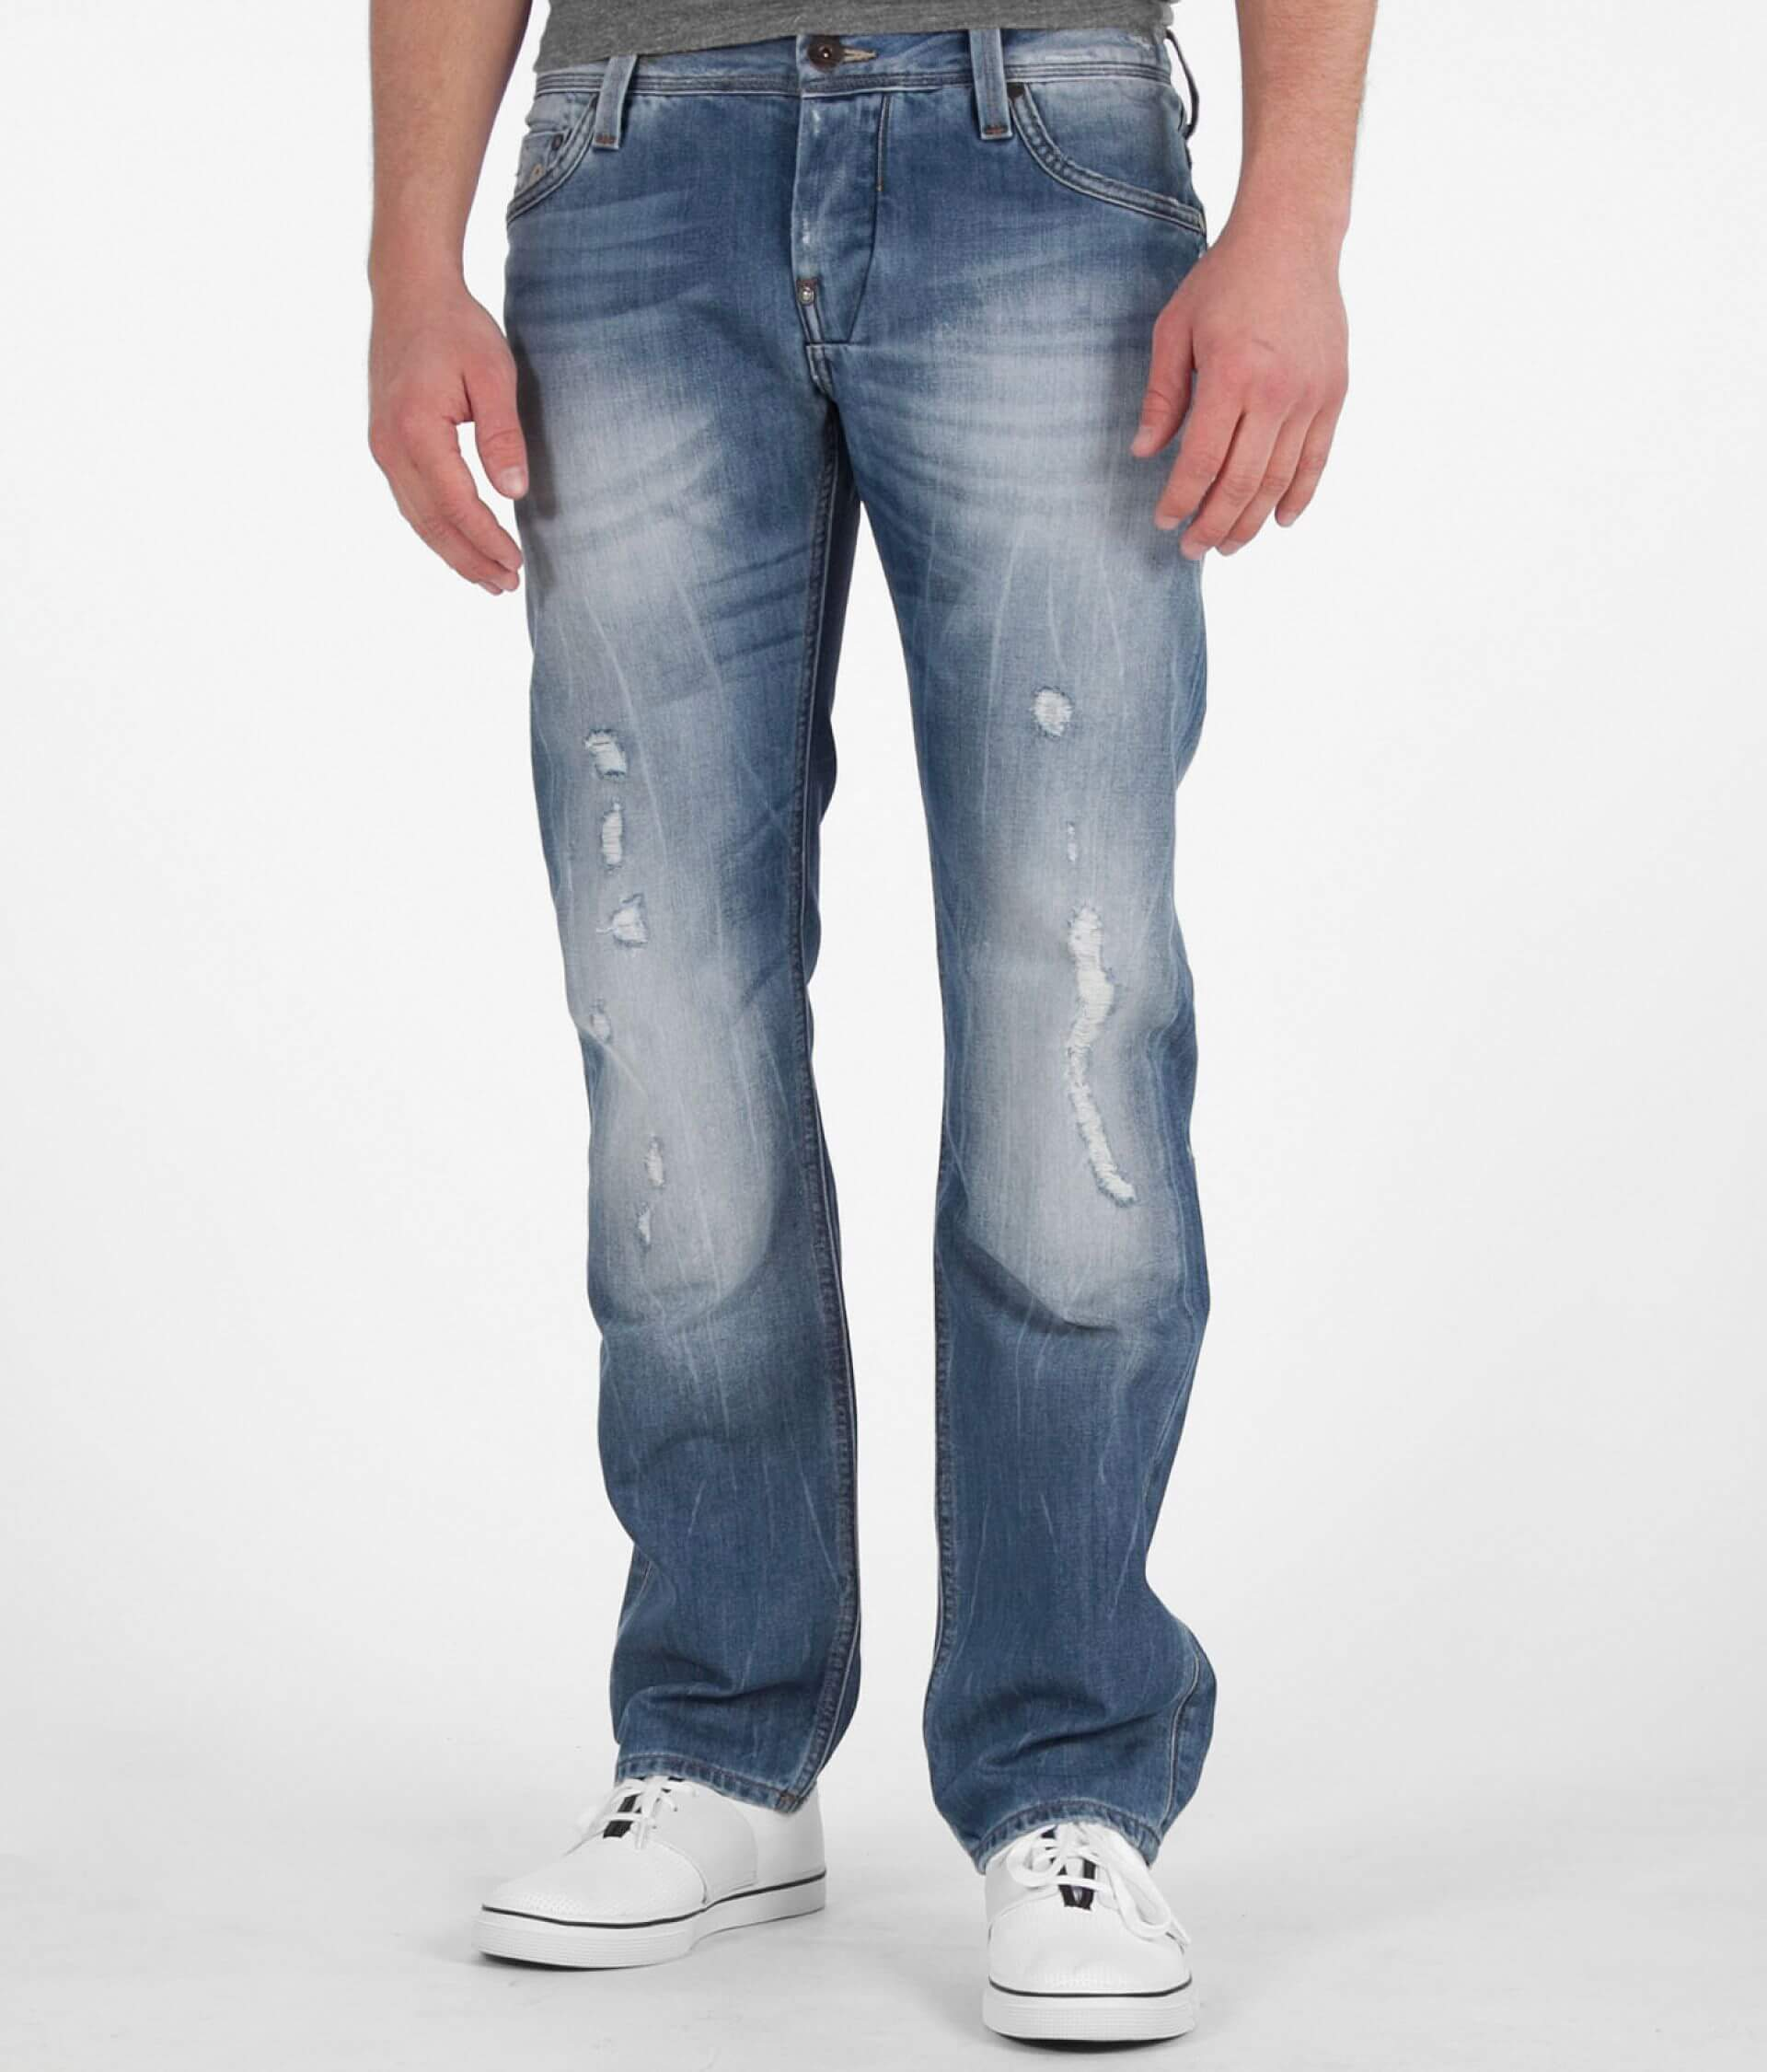 28bc073e0d8 G-Star RAW Attacc Straight Jean - Men's Jeans in Light Aged Destroy ...